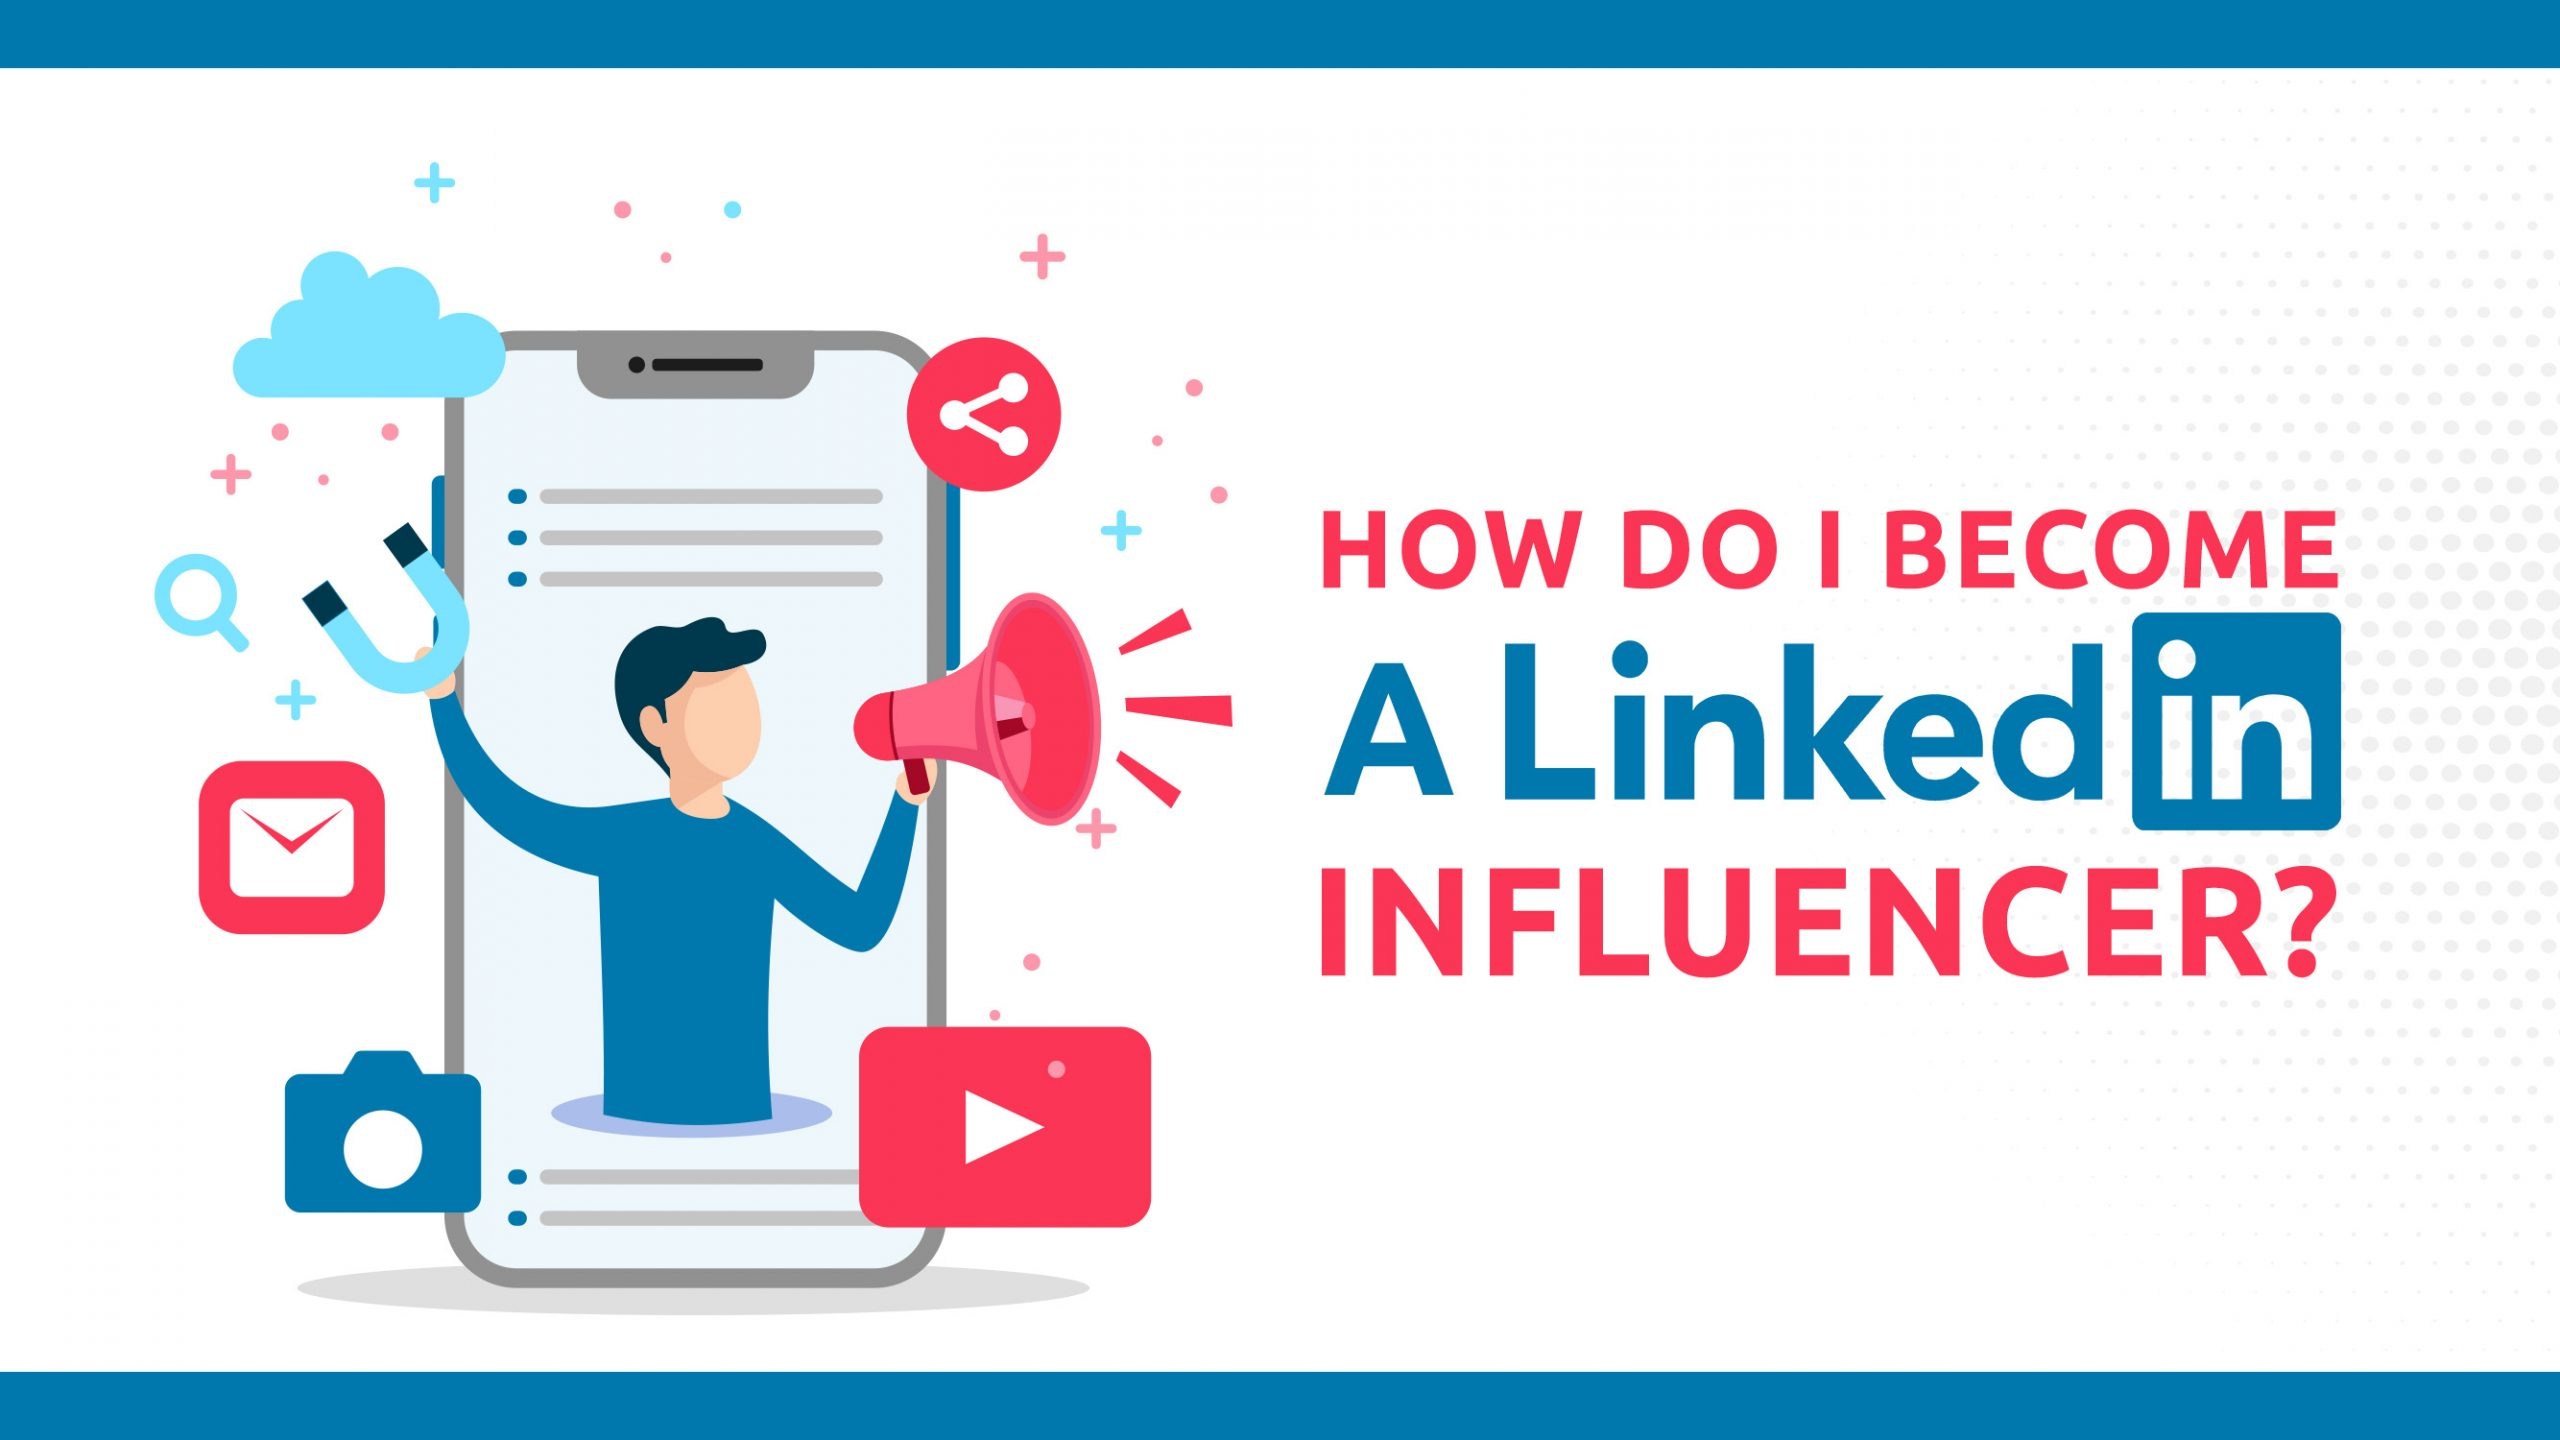 How Do I Become A LinkedIn Influencer?